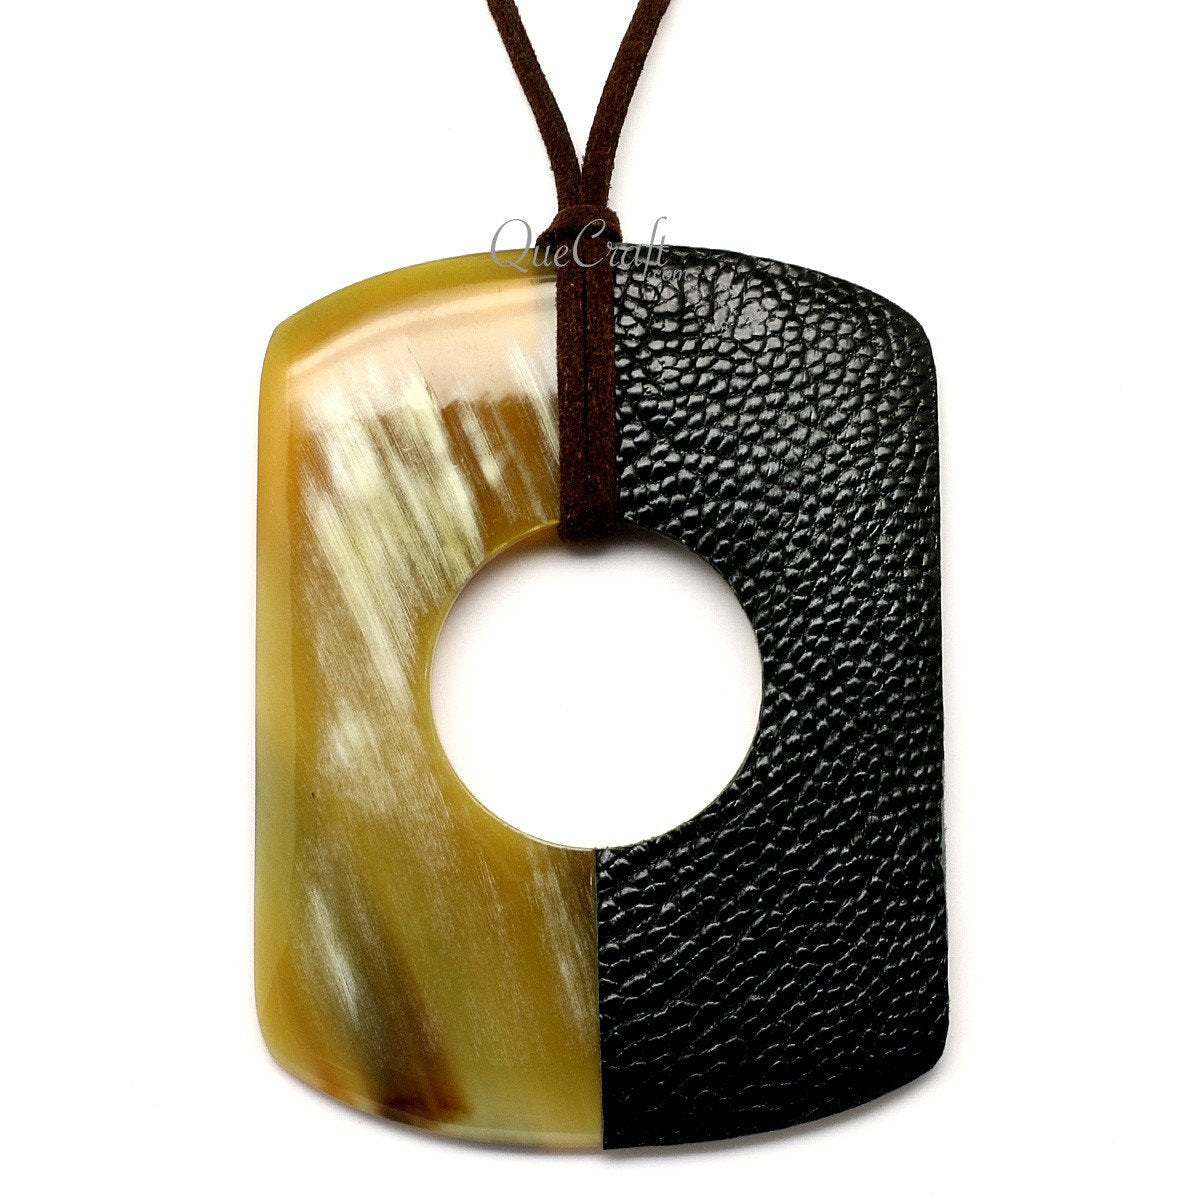 Horn & Leather Pendant #12518 - HORN.JEWELRY